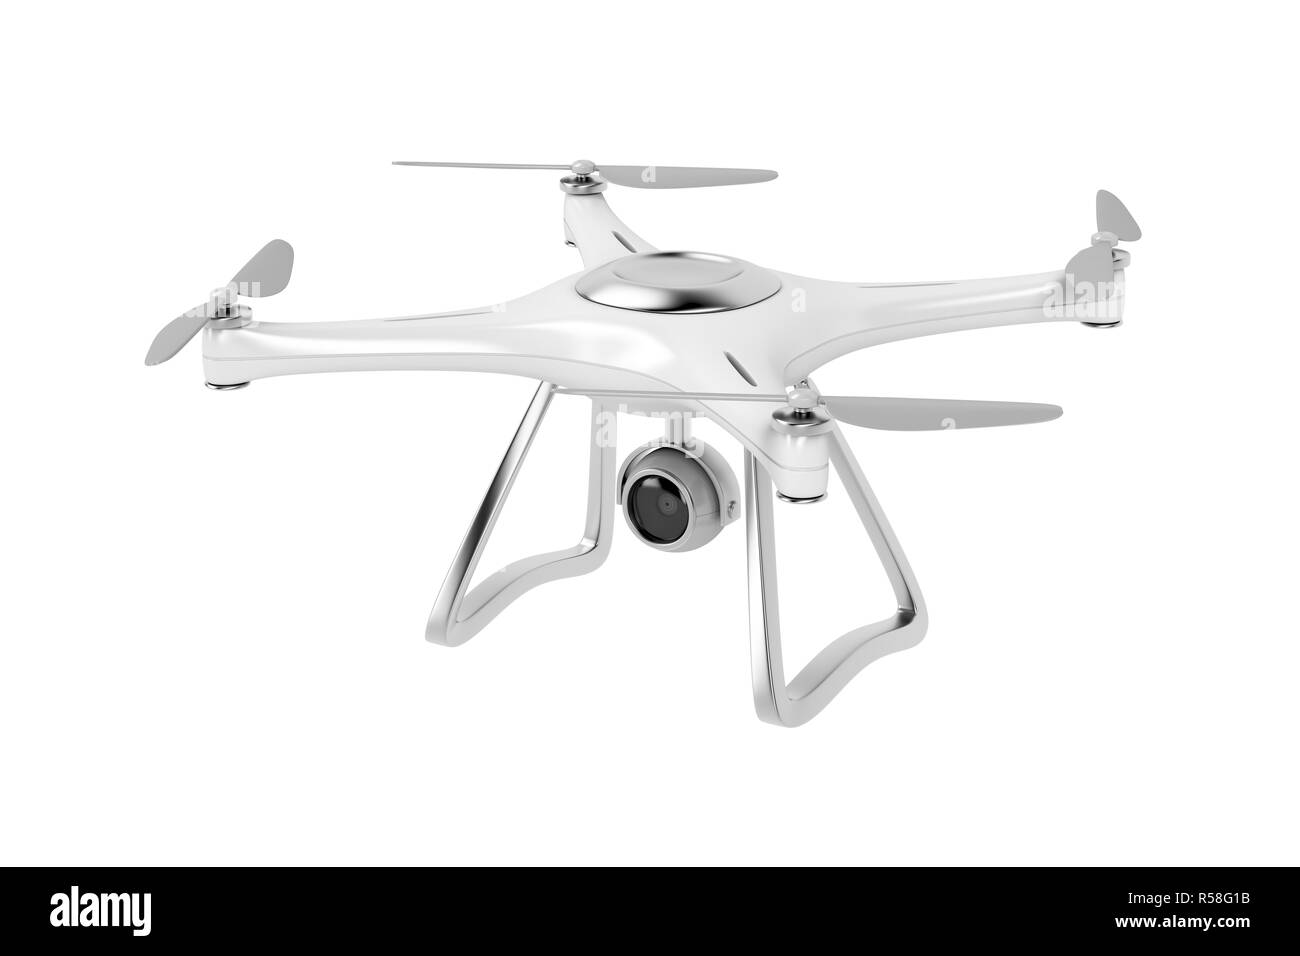 Unmanned aerial vehicle (drone) - Stock Image